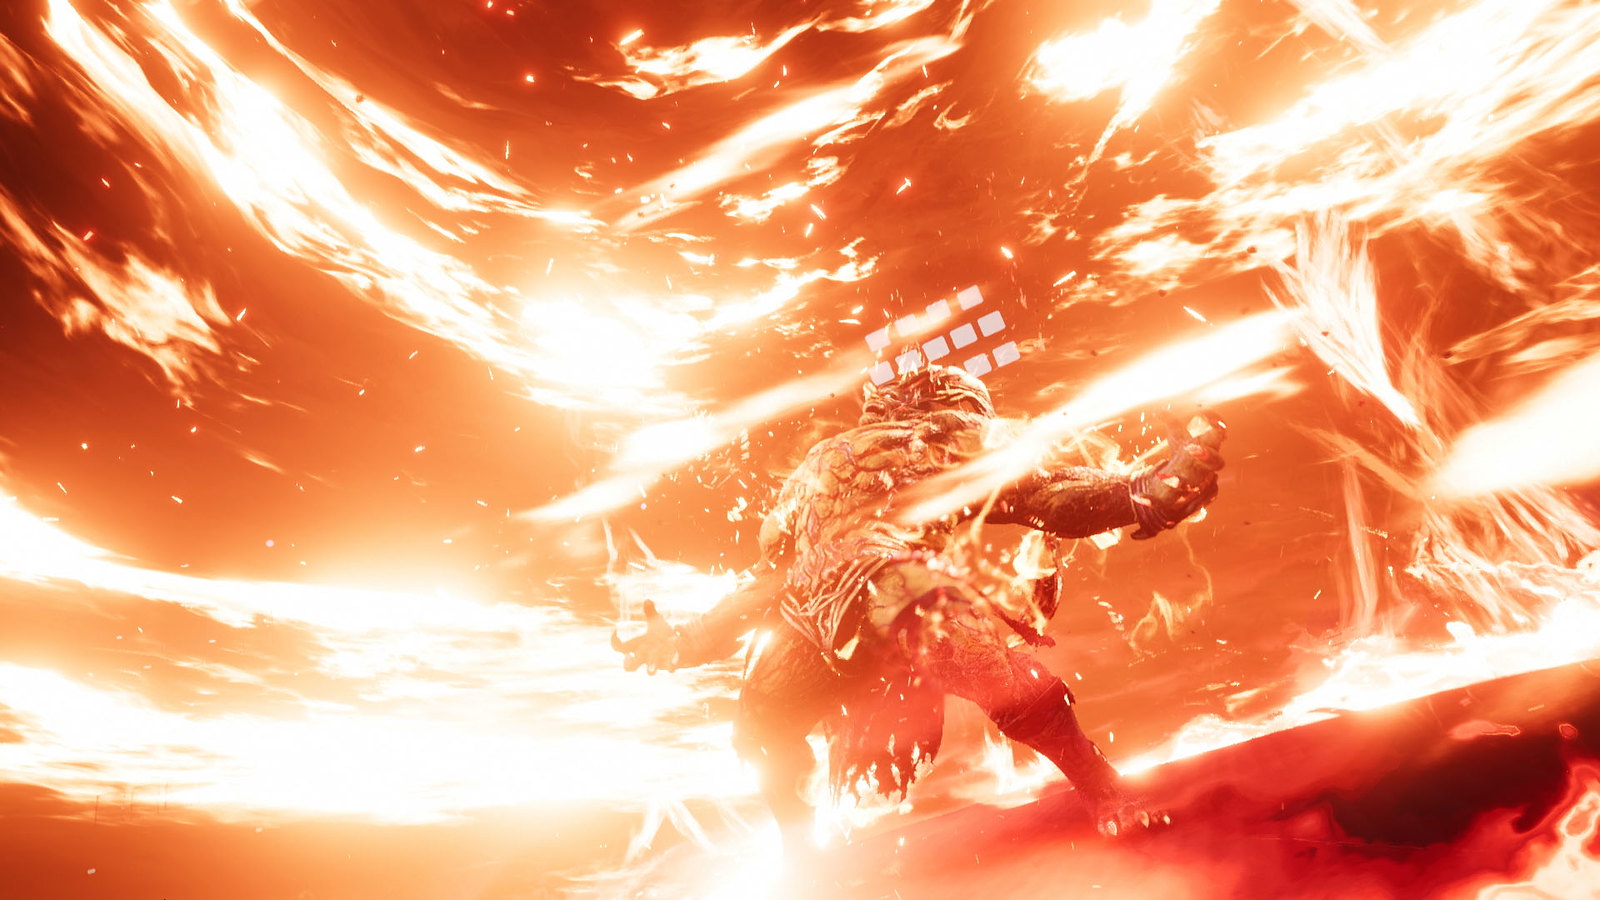 Final Fantasy VII Remake - Ifrit